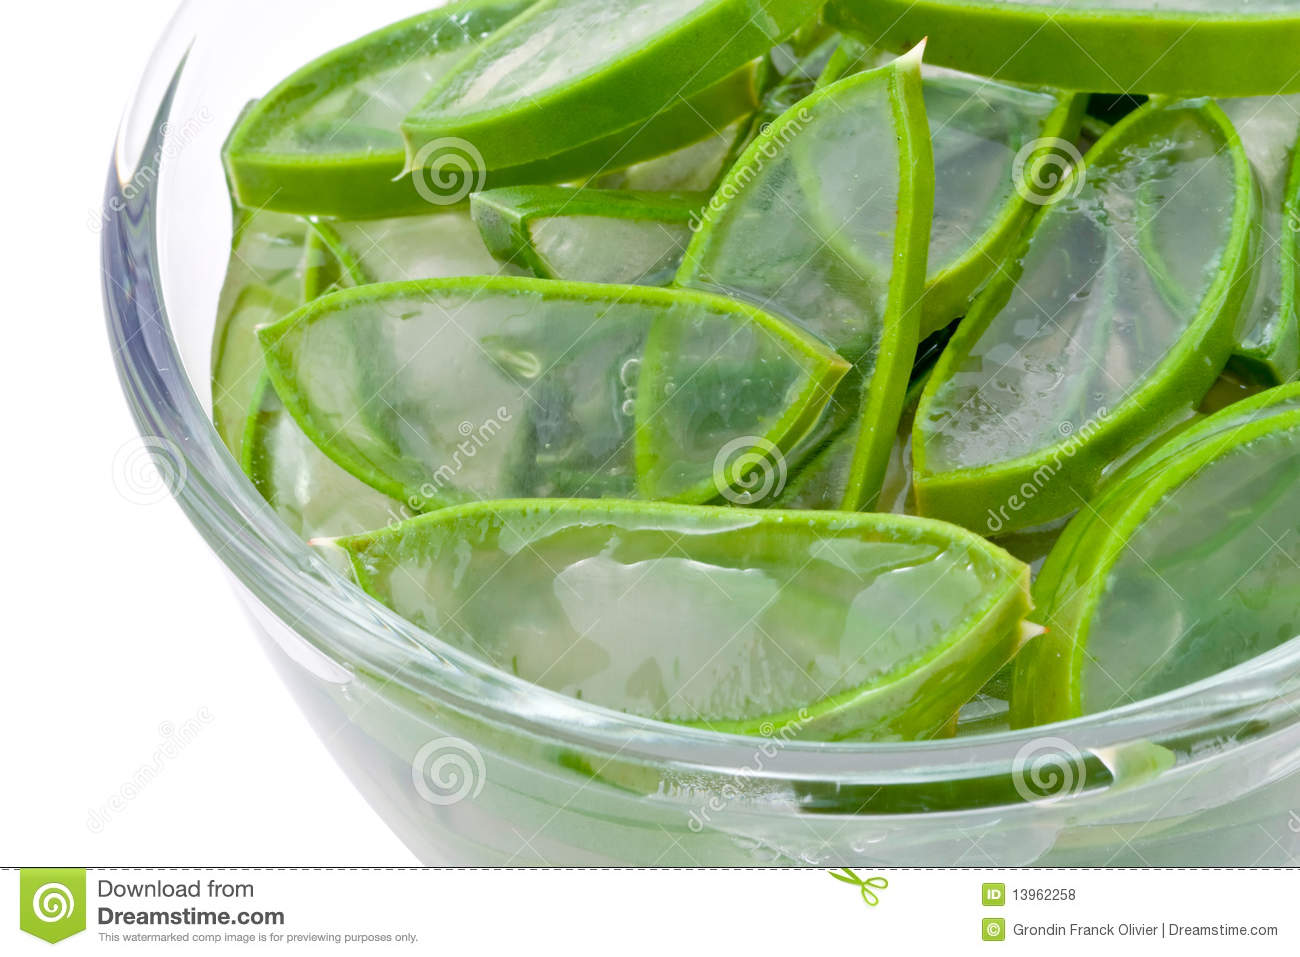 Sliced Aloe Vera Plant Royalty Free Stock Photos  Image: 13962258